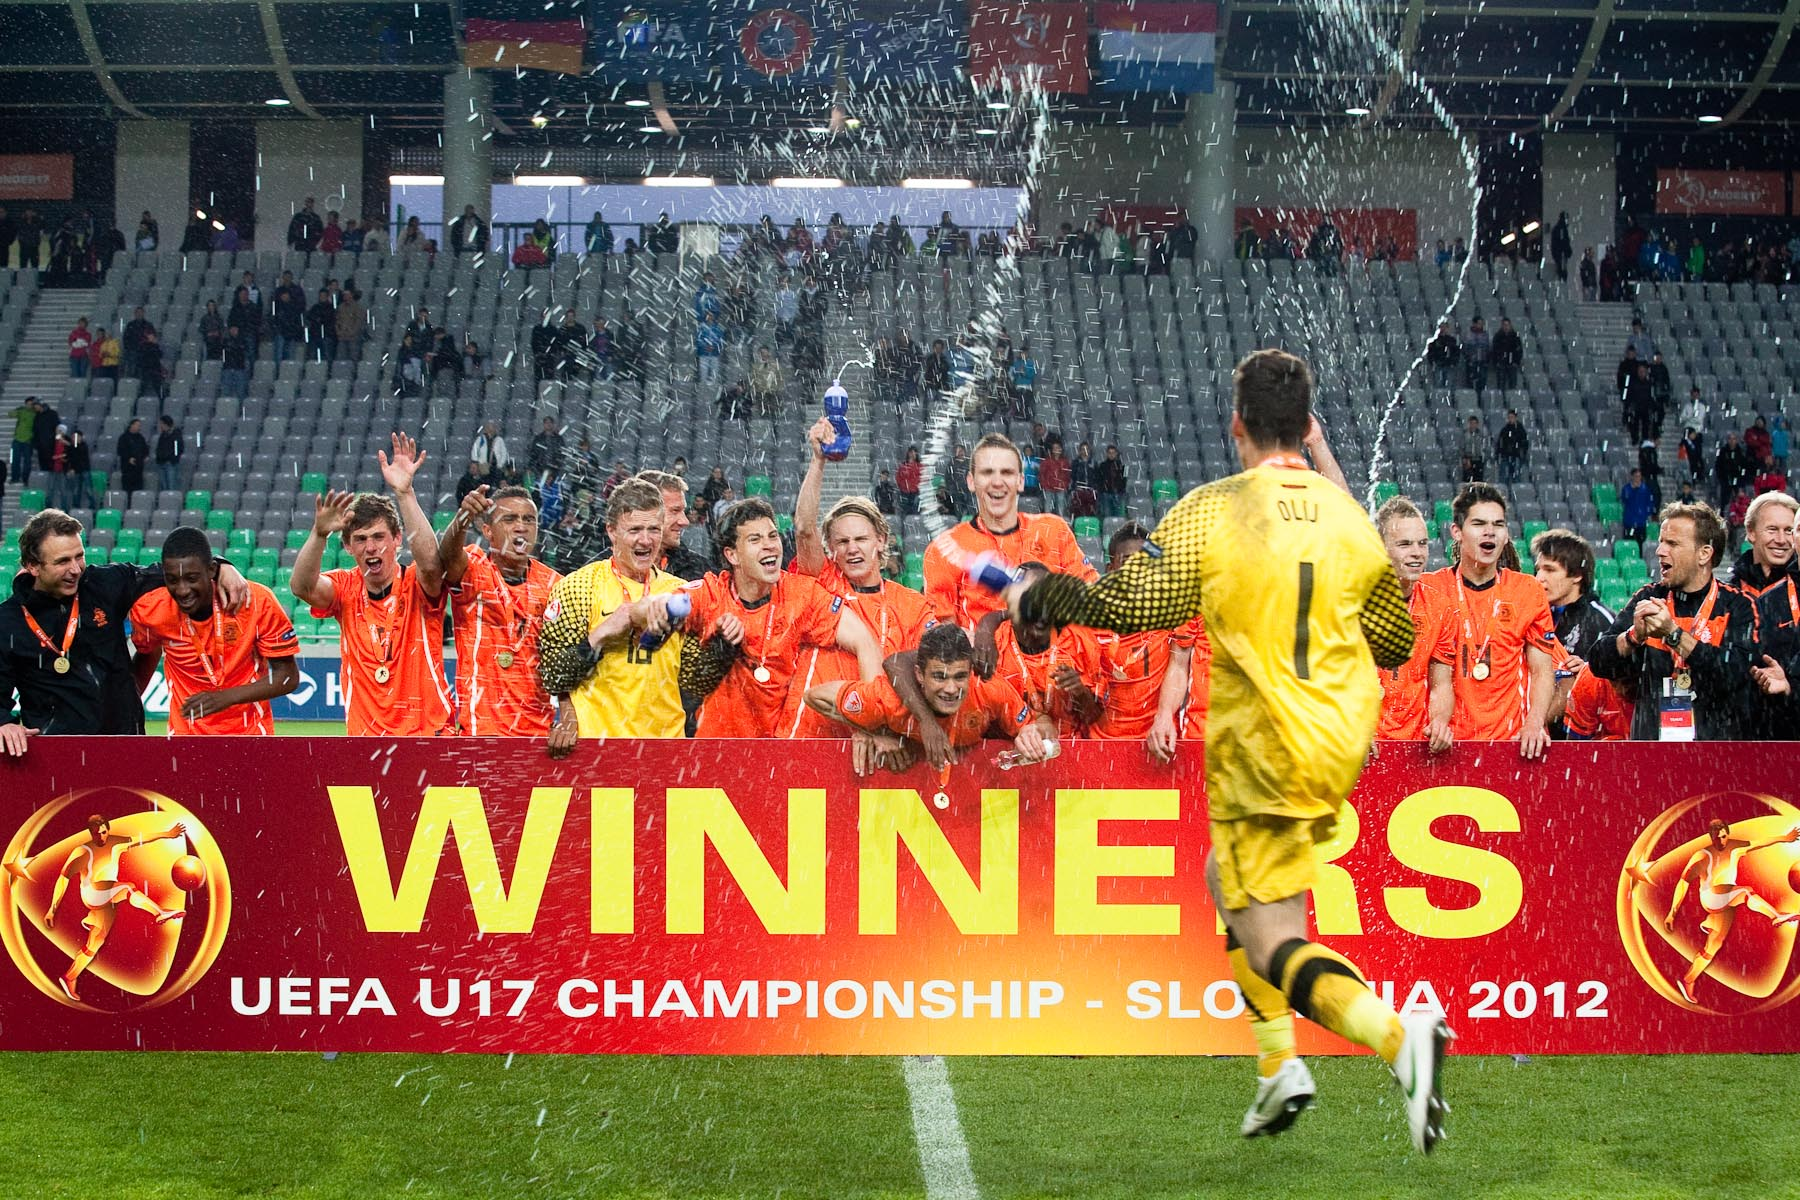 Nick Olij, Netherlands\' goalkeeper, jumps as Team Netherlands celebrates winning the UEFA U-17 European Championship final match between Germany and the Netherlands at the SRC Stozice Stadium in Ljubljana, Slovenia, May 16, 2012.